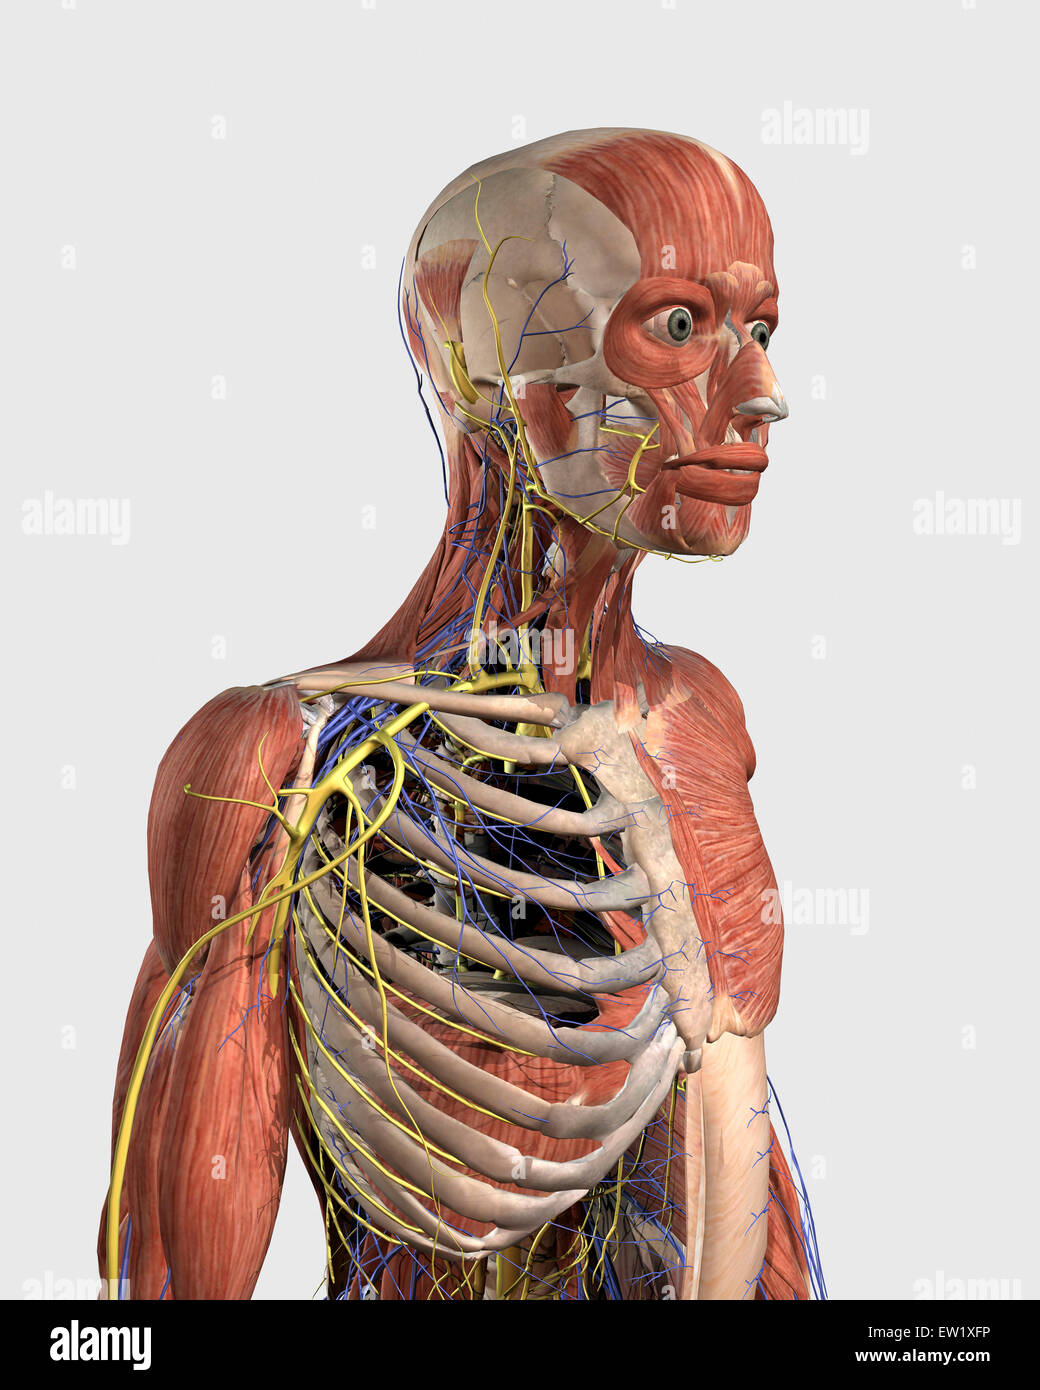 Anatomy Midsection Stock Photos Anatomy Midsection Stock Images